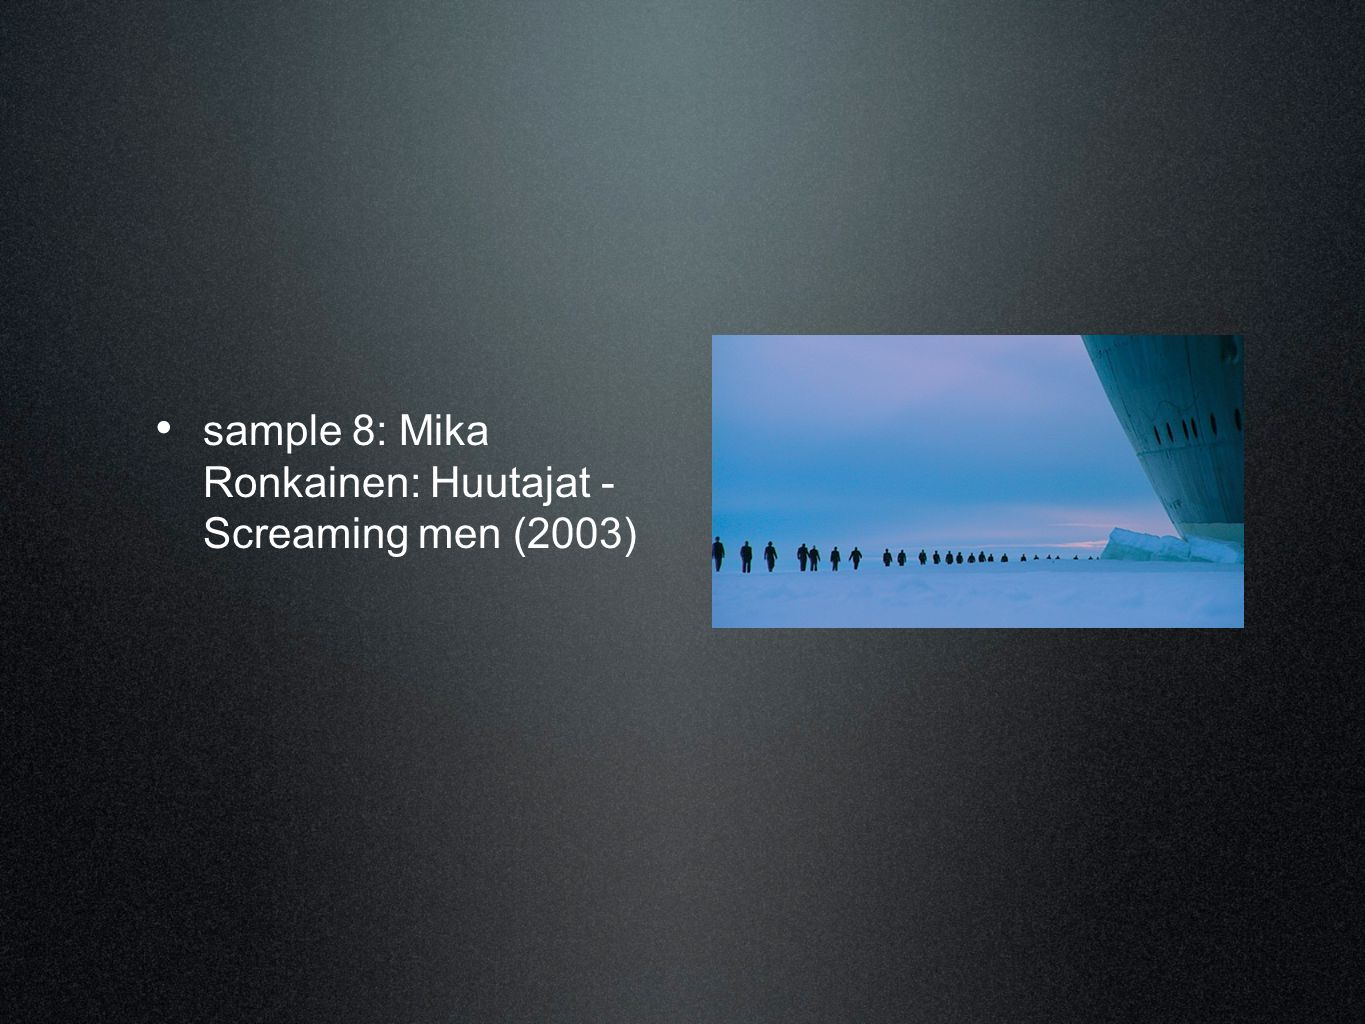 • sample 8: Mika Ronkainen: Huutajat - Screaming men (2003)